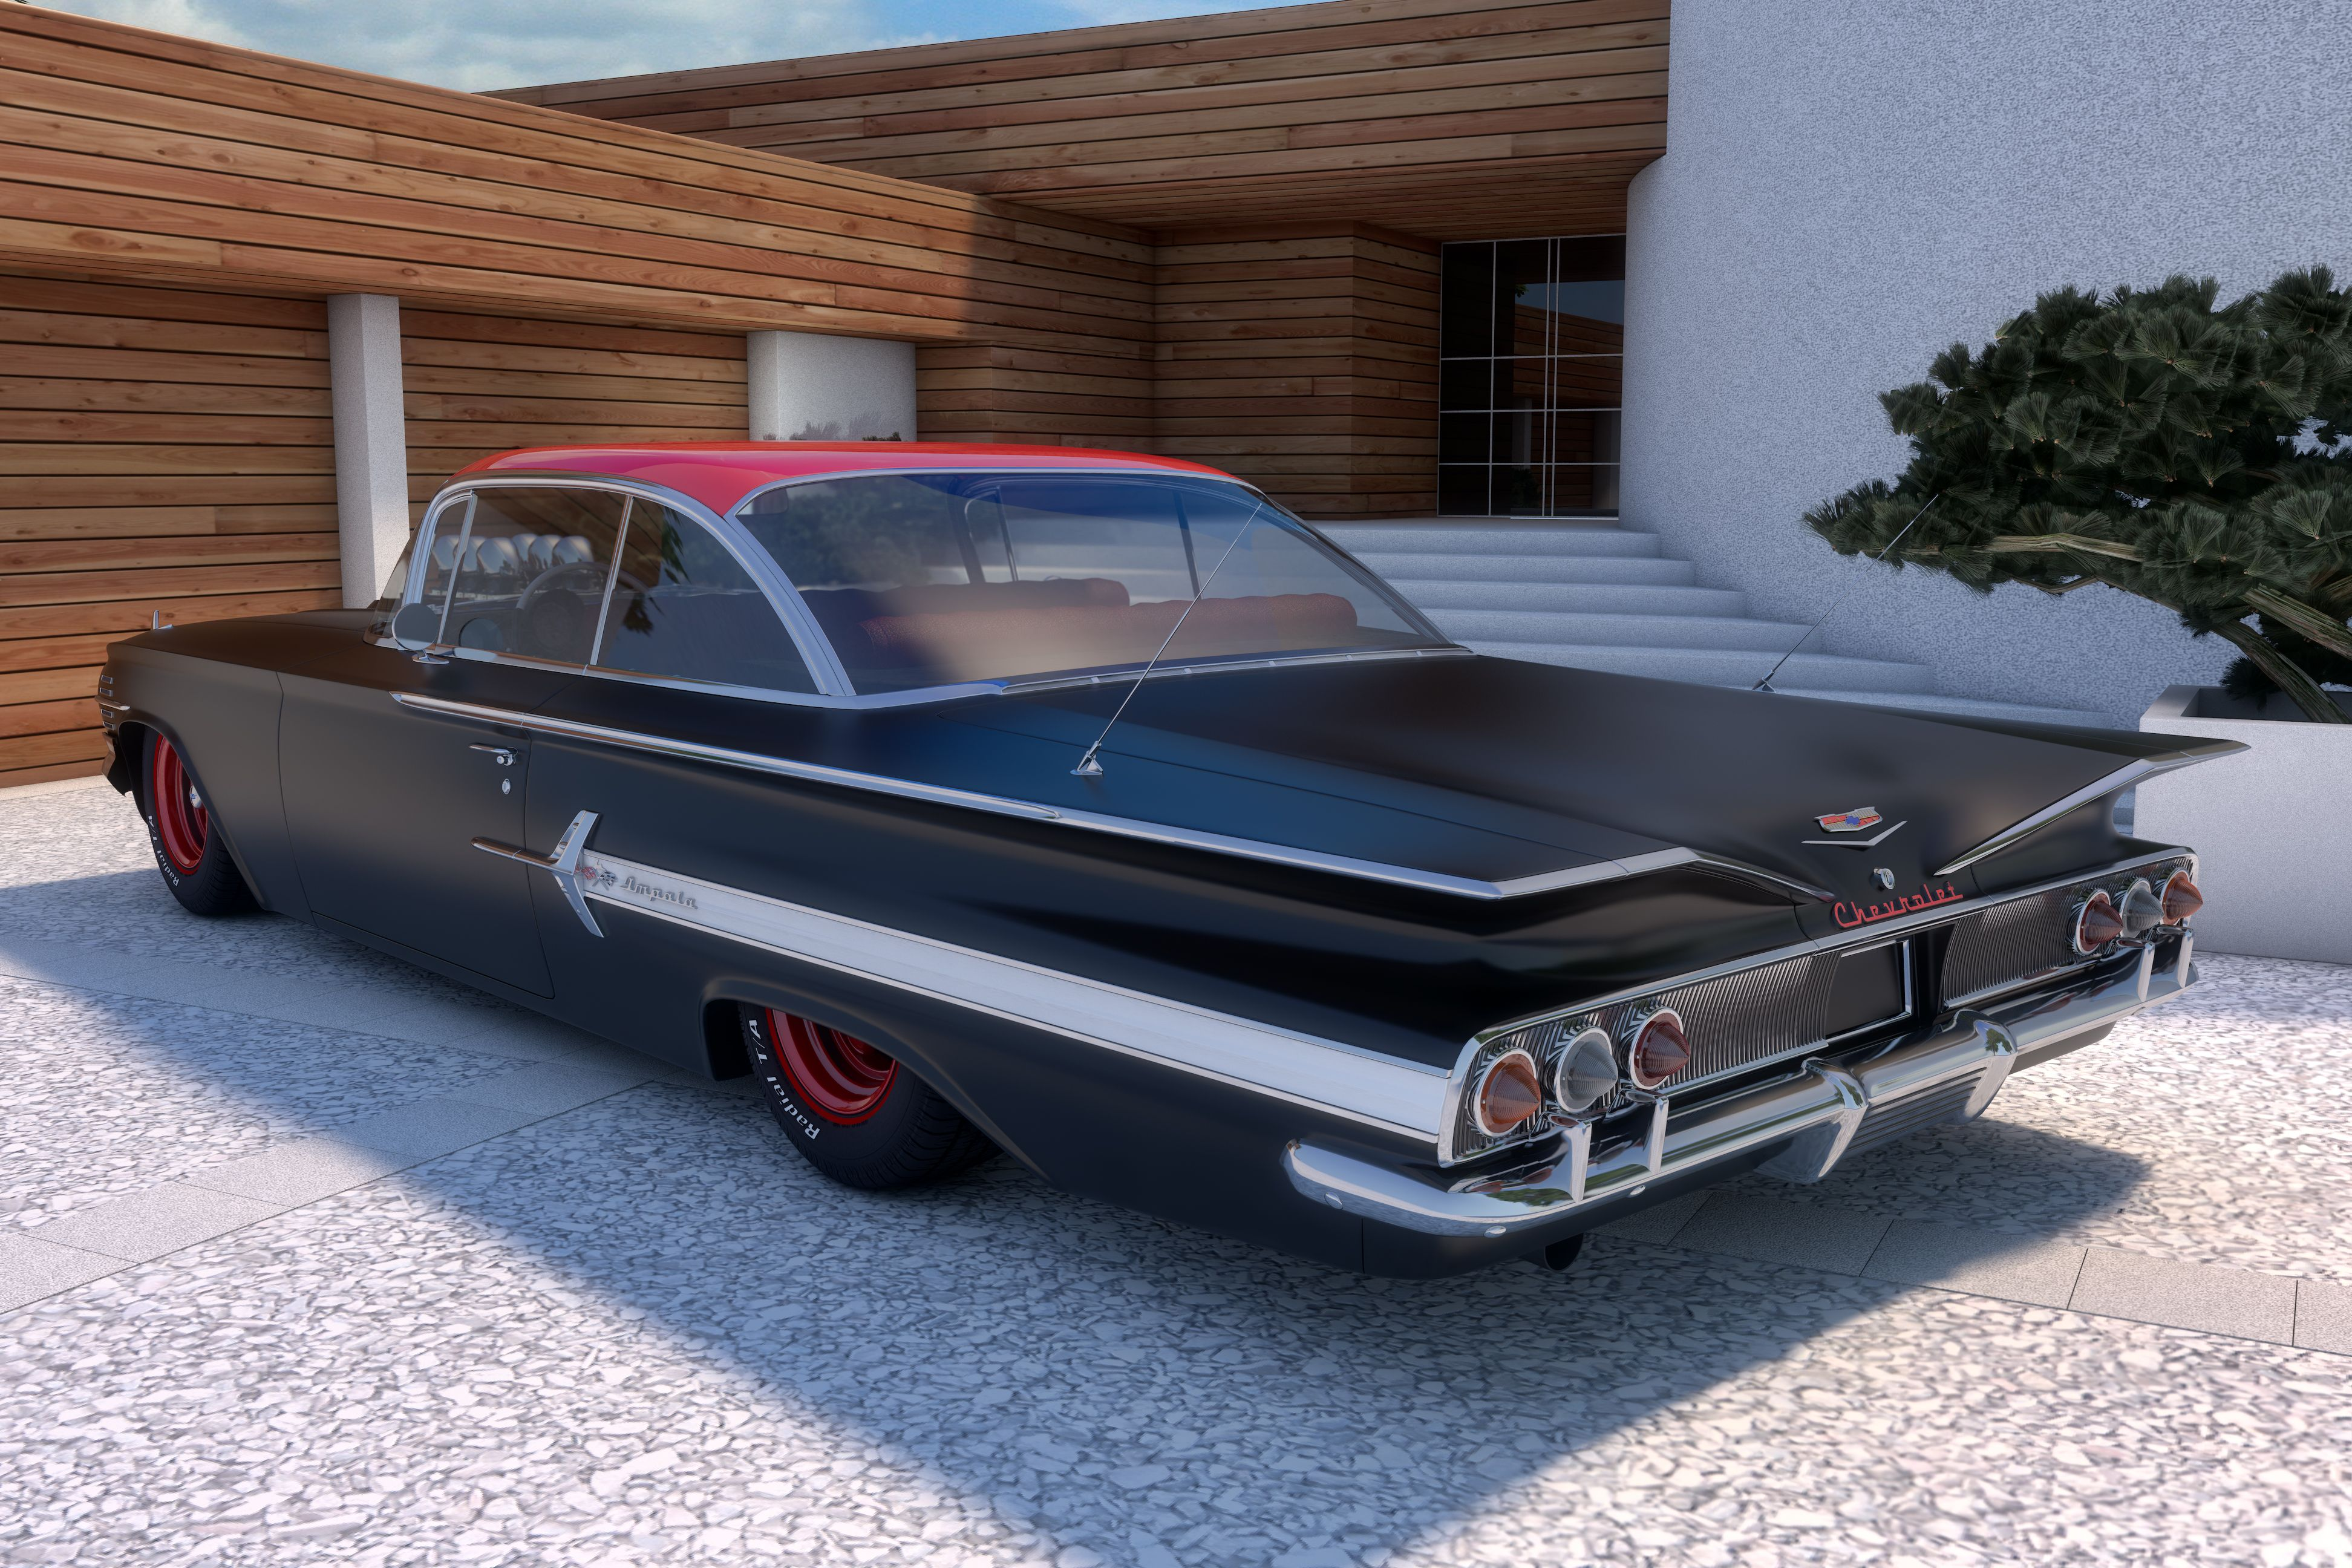 A Sweet 60 Chevy 1960 Chevy Impala Detroit Steel Hot Rods Cars